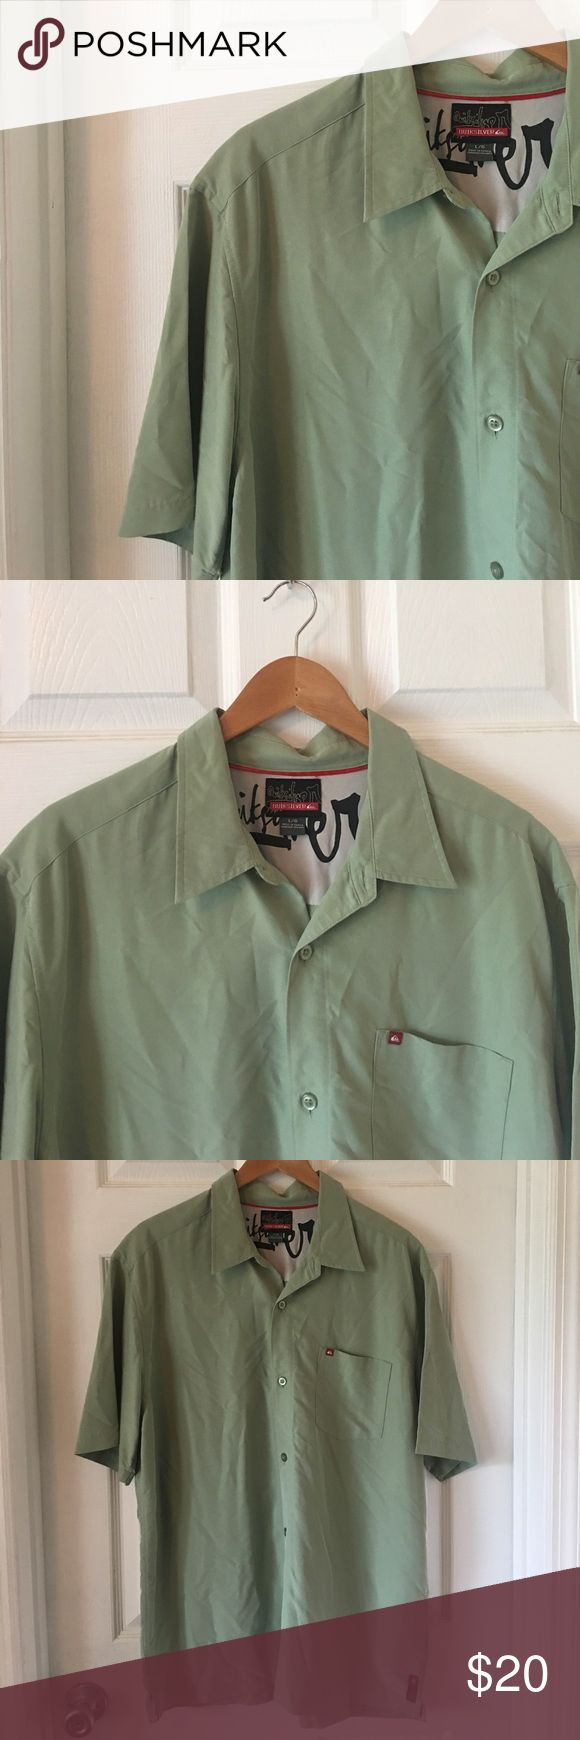 Super Soft Button Down Super cute Quicksilver casual button down shirt. Super soft. Green. EUC, barely worn. One front pocket. Extra button included. Fabric: 70% Rayon 30% Polyester Quicksilver Shirts Casual Button Down Shirts